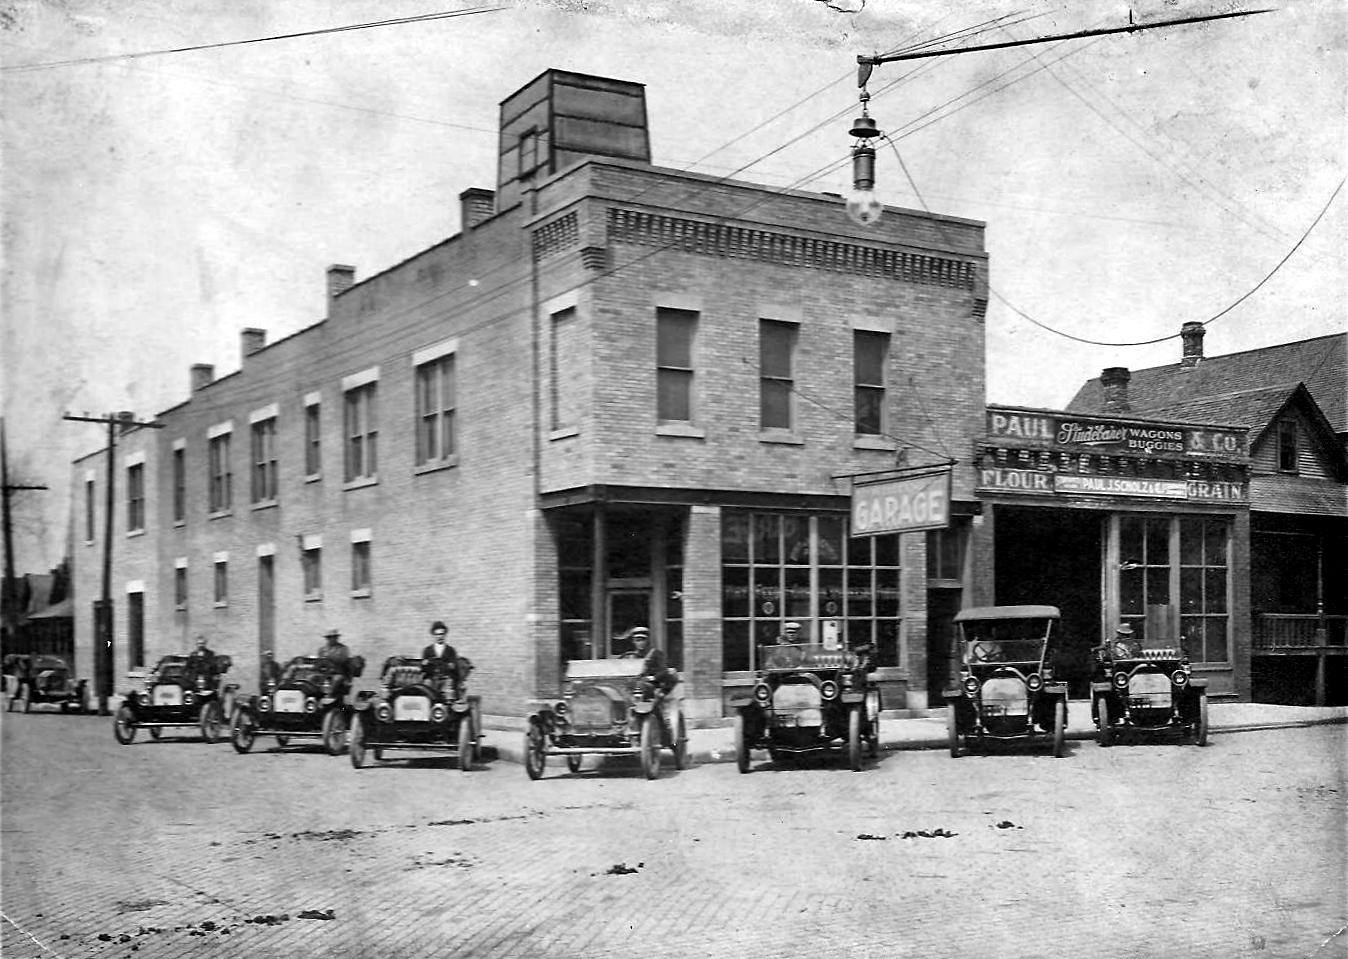 A group of drivers pose with their cars outside of the Whiting Garage at the northwest corner of New York and Fischrupp Avenues. The garage was a part of the Paul Scholz Wagons & Buggies Company. Paul Scholz's flour and grain store also operated at this site.